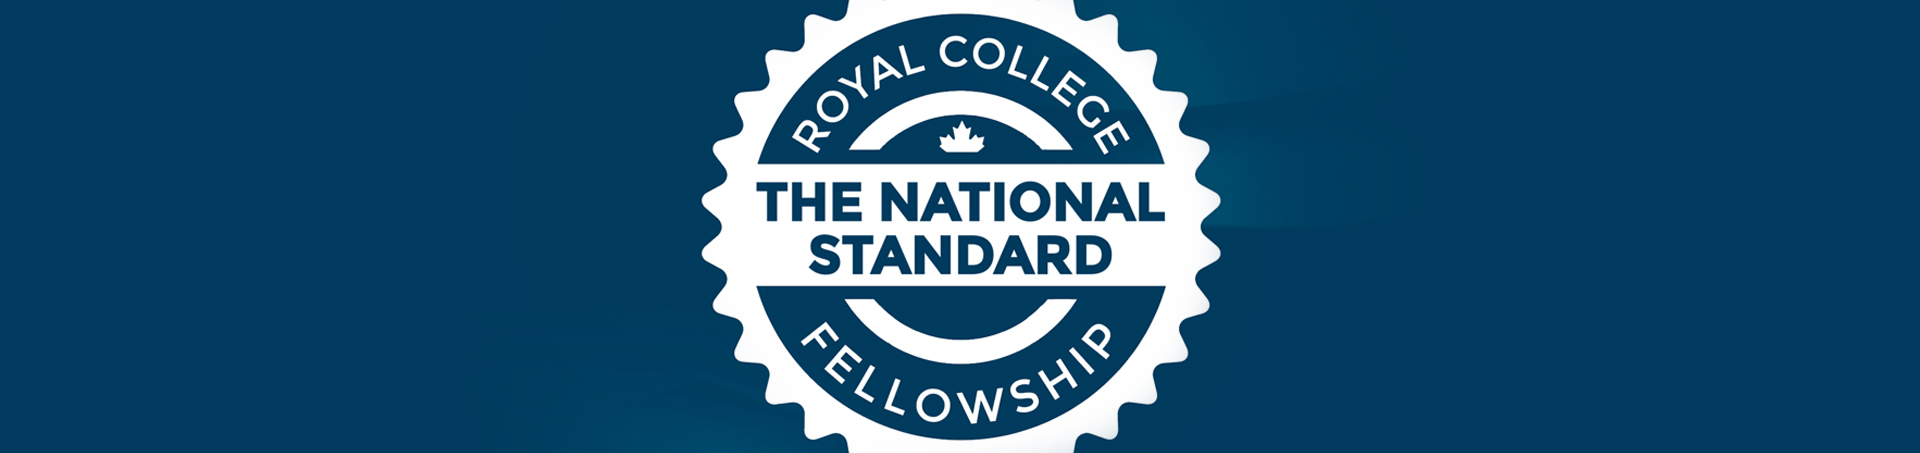 "Image of a badge we created for the Royal College of Physicians and Surgeons as part of an association membership marketing campaign called ""Fellowship Matters""."